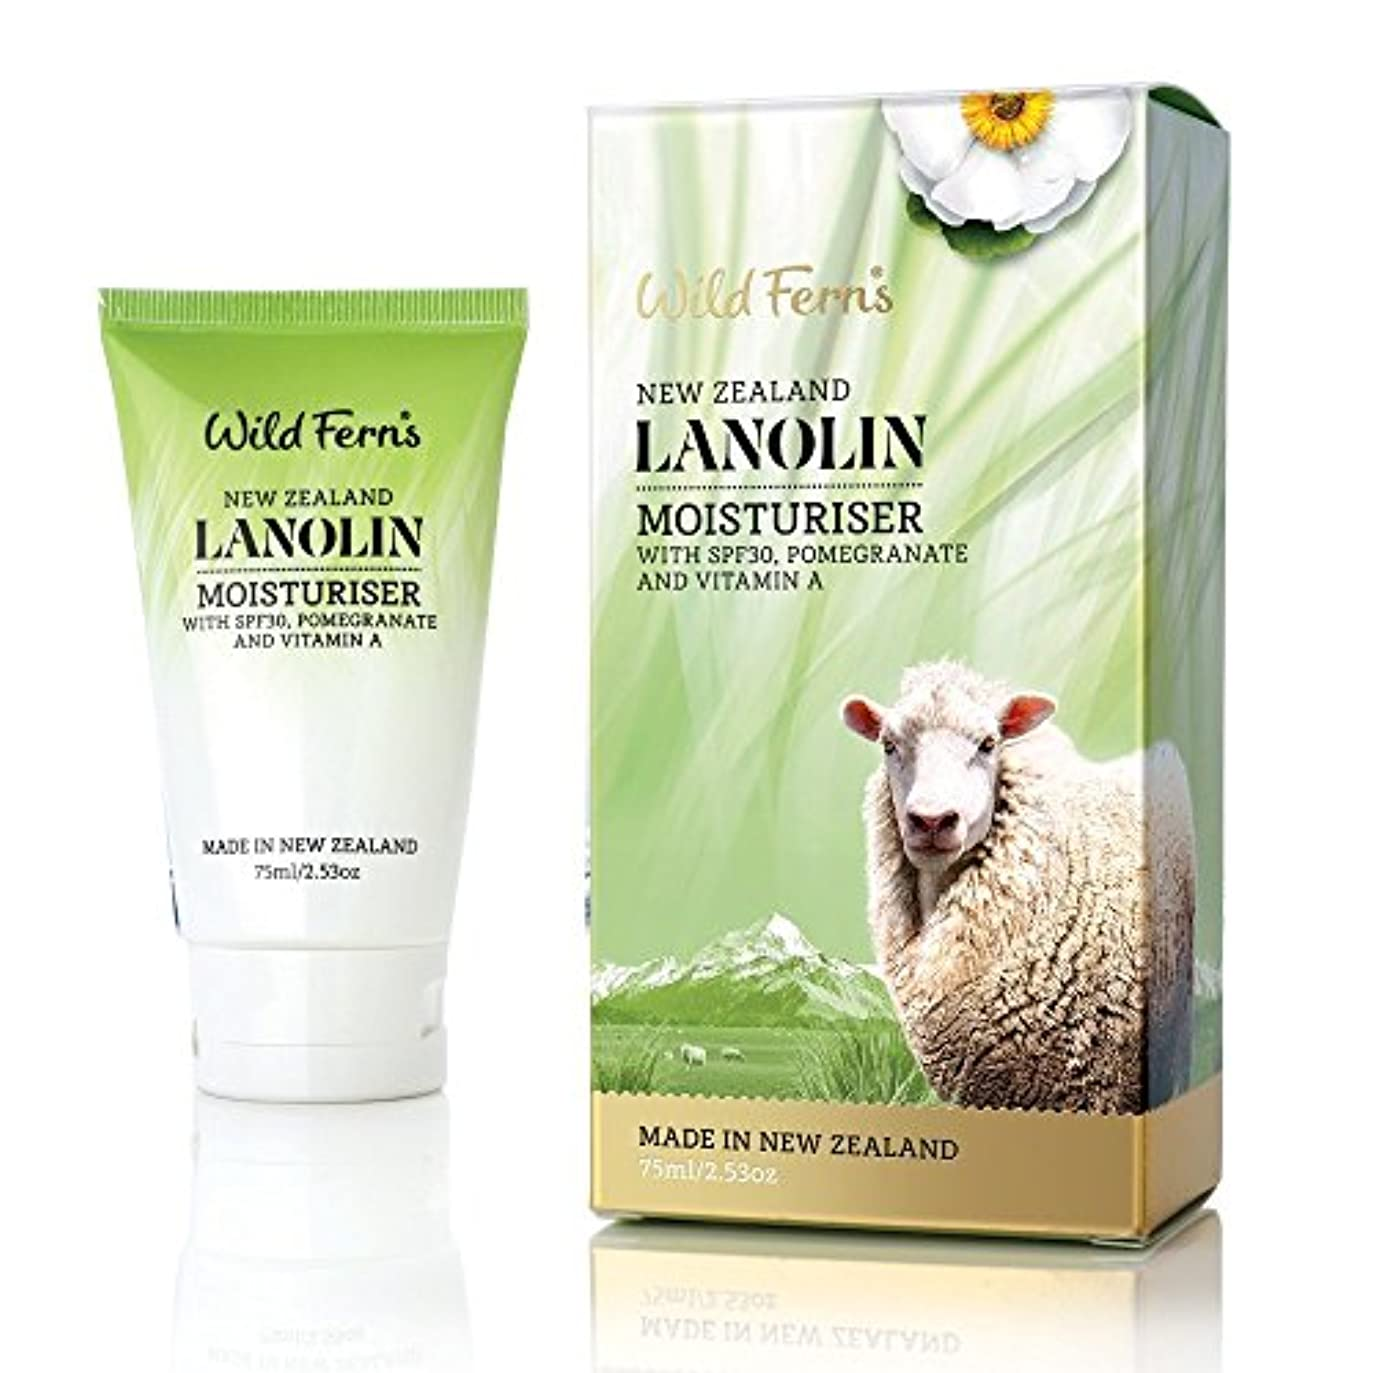 Wild Ferns Lanolin モイスチャライザーwith SPF 30 75ml